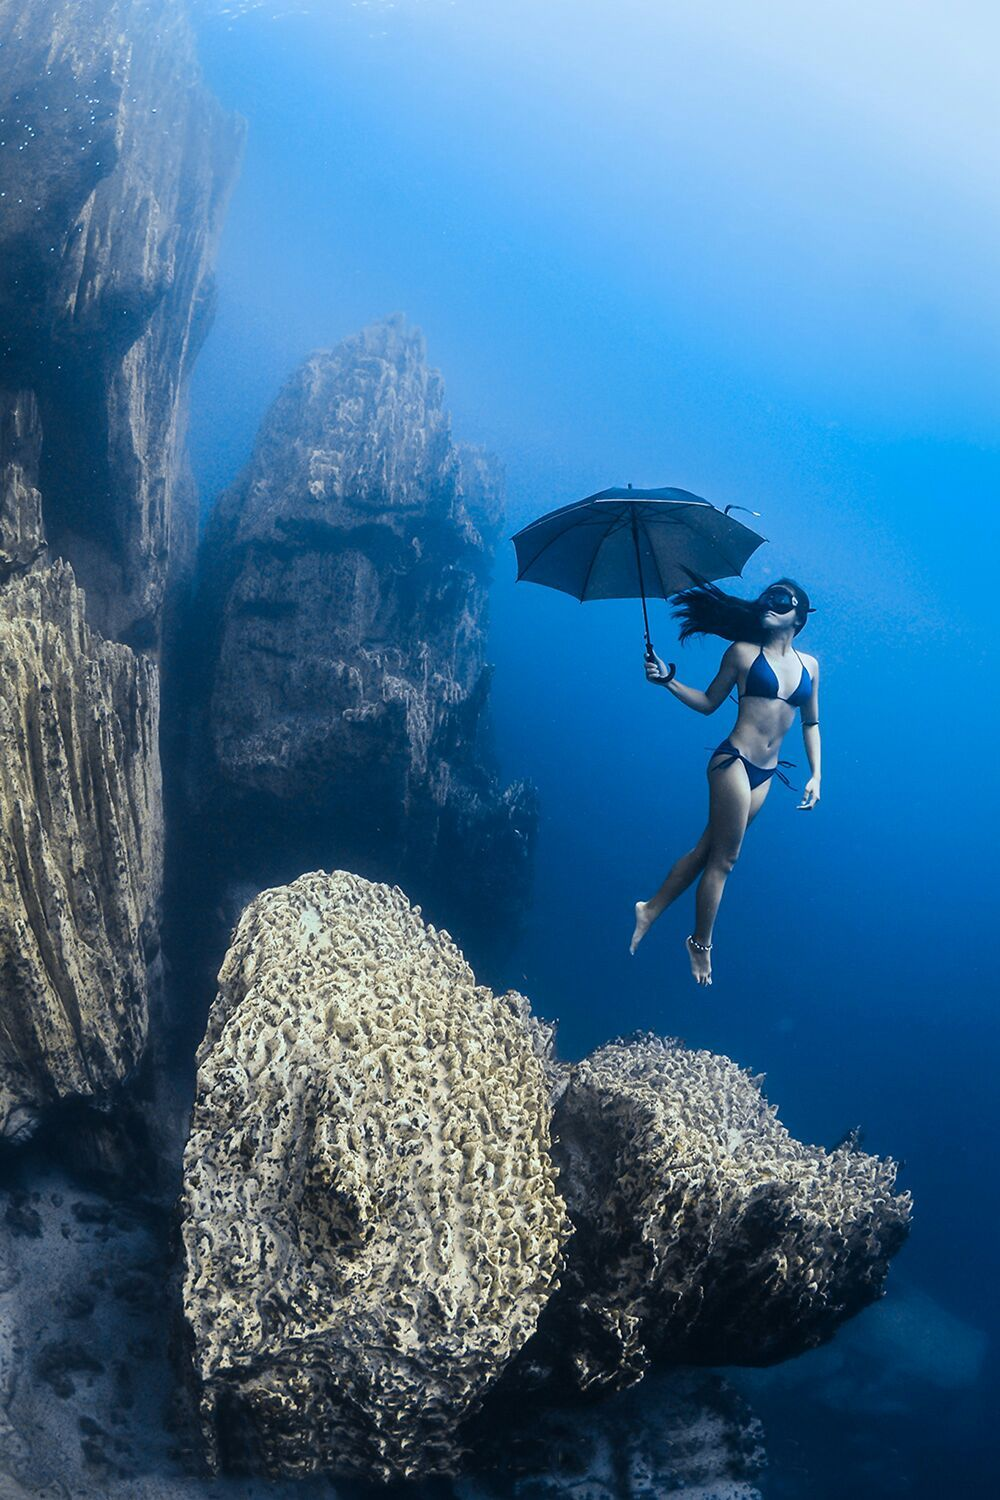 Pin By Michael Van Patten On Water Pinterest Underwater Pose - The best underwater photographs of 2016 are amazing